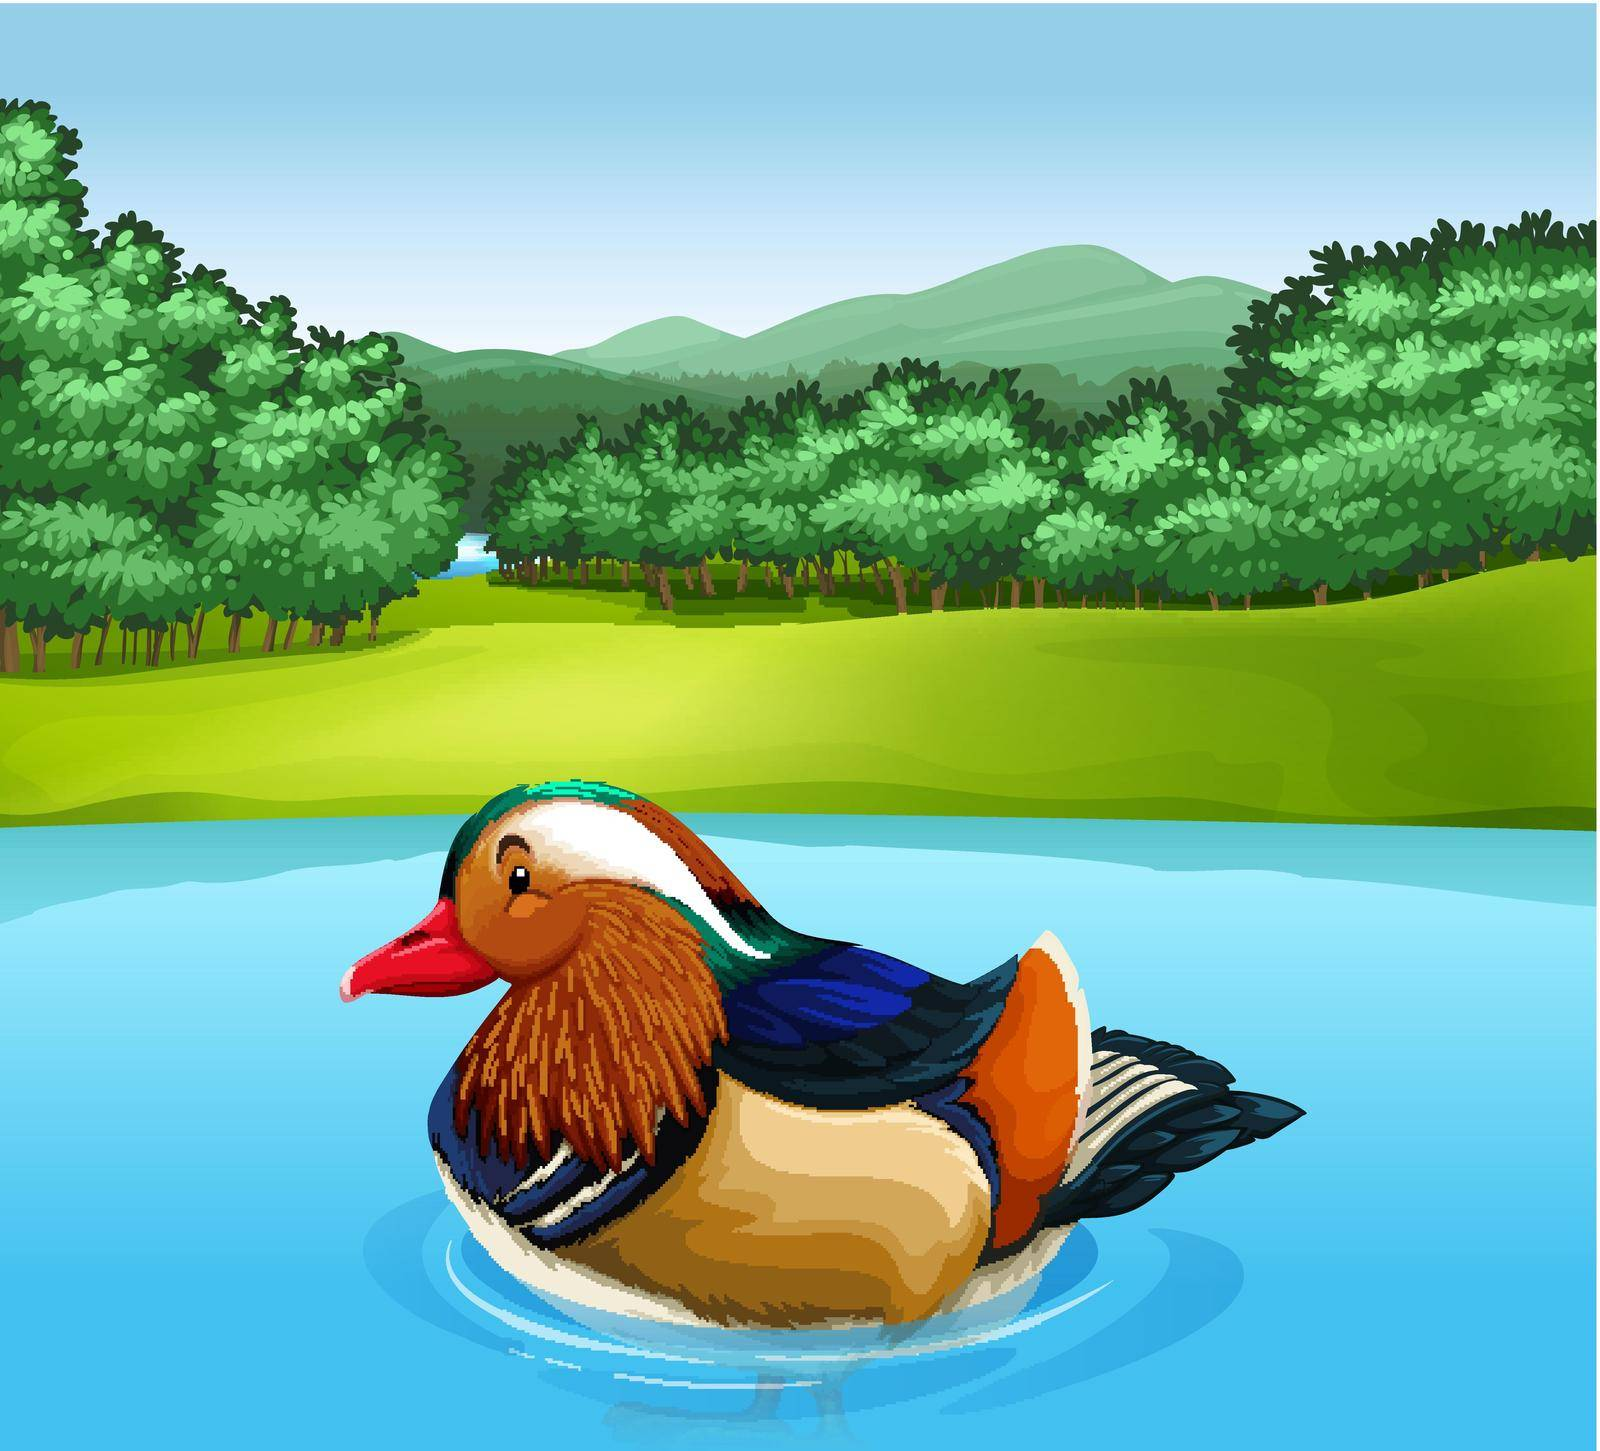 Poster of a Mandarin duck swimming in a river